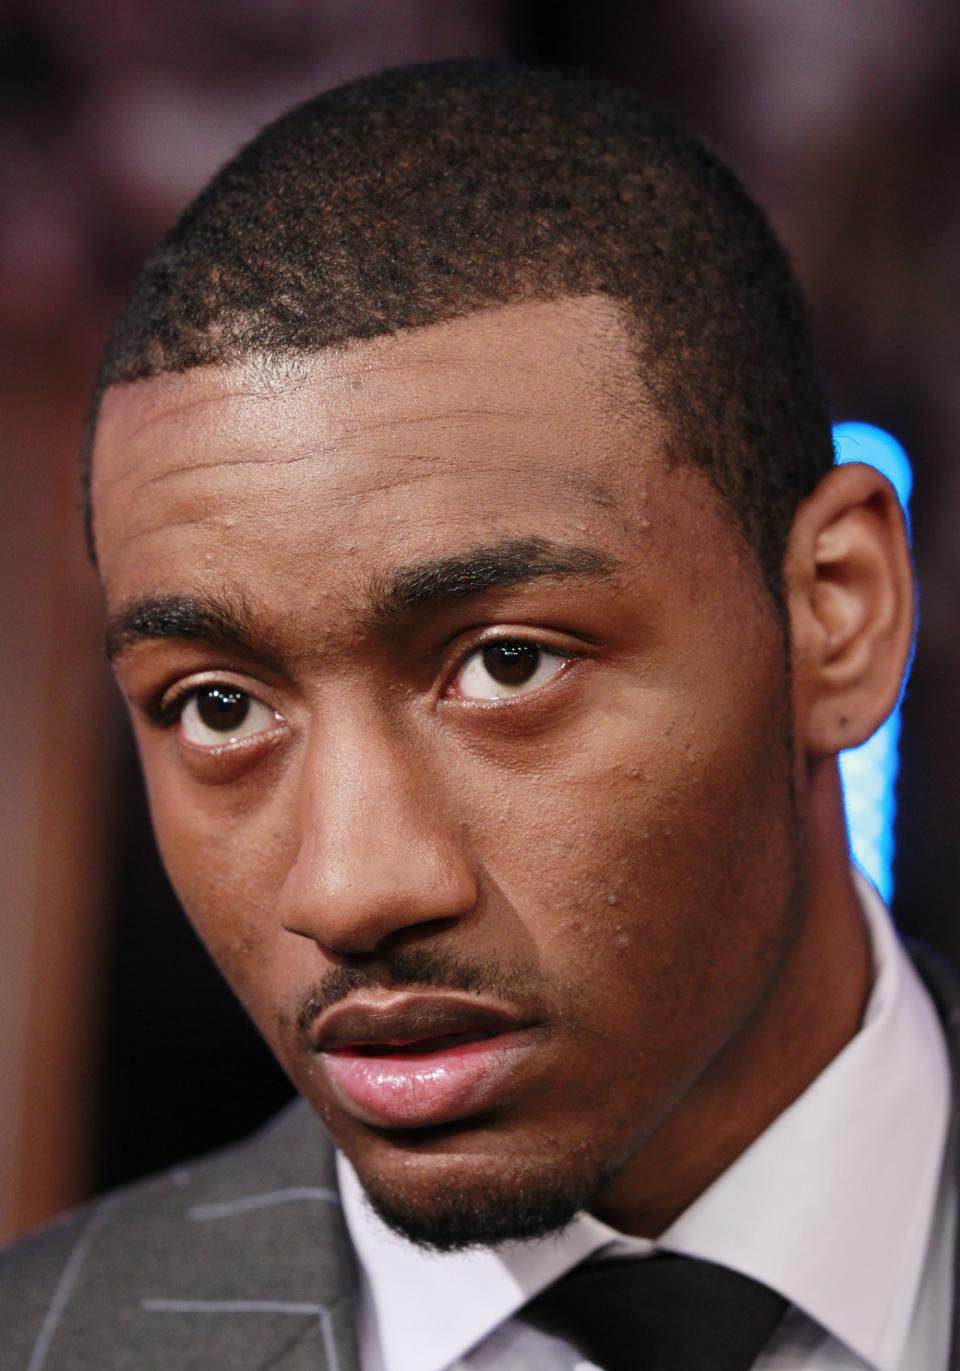 Washington Wizards' John Wall attends the 2011 NBA basketball draft lottery, Tuesday, May 17, 2011 in Secaucus, N.J. (AP Photo/Julio Cortez)